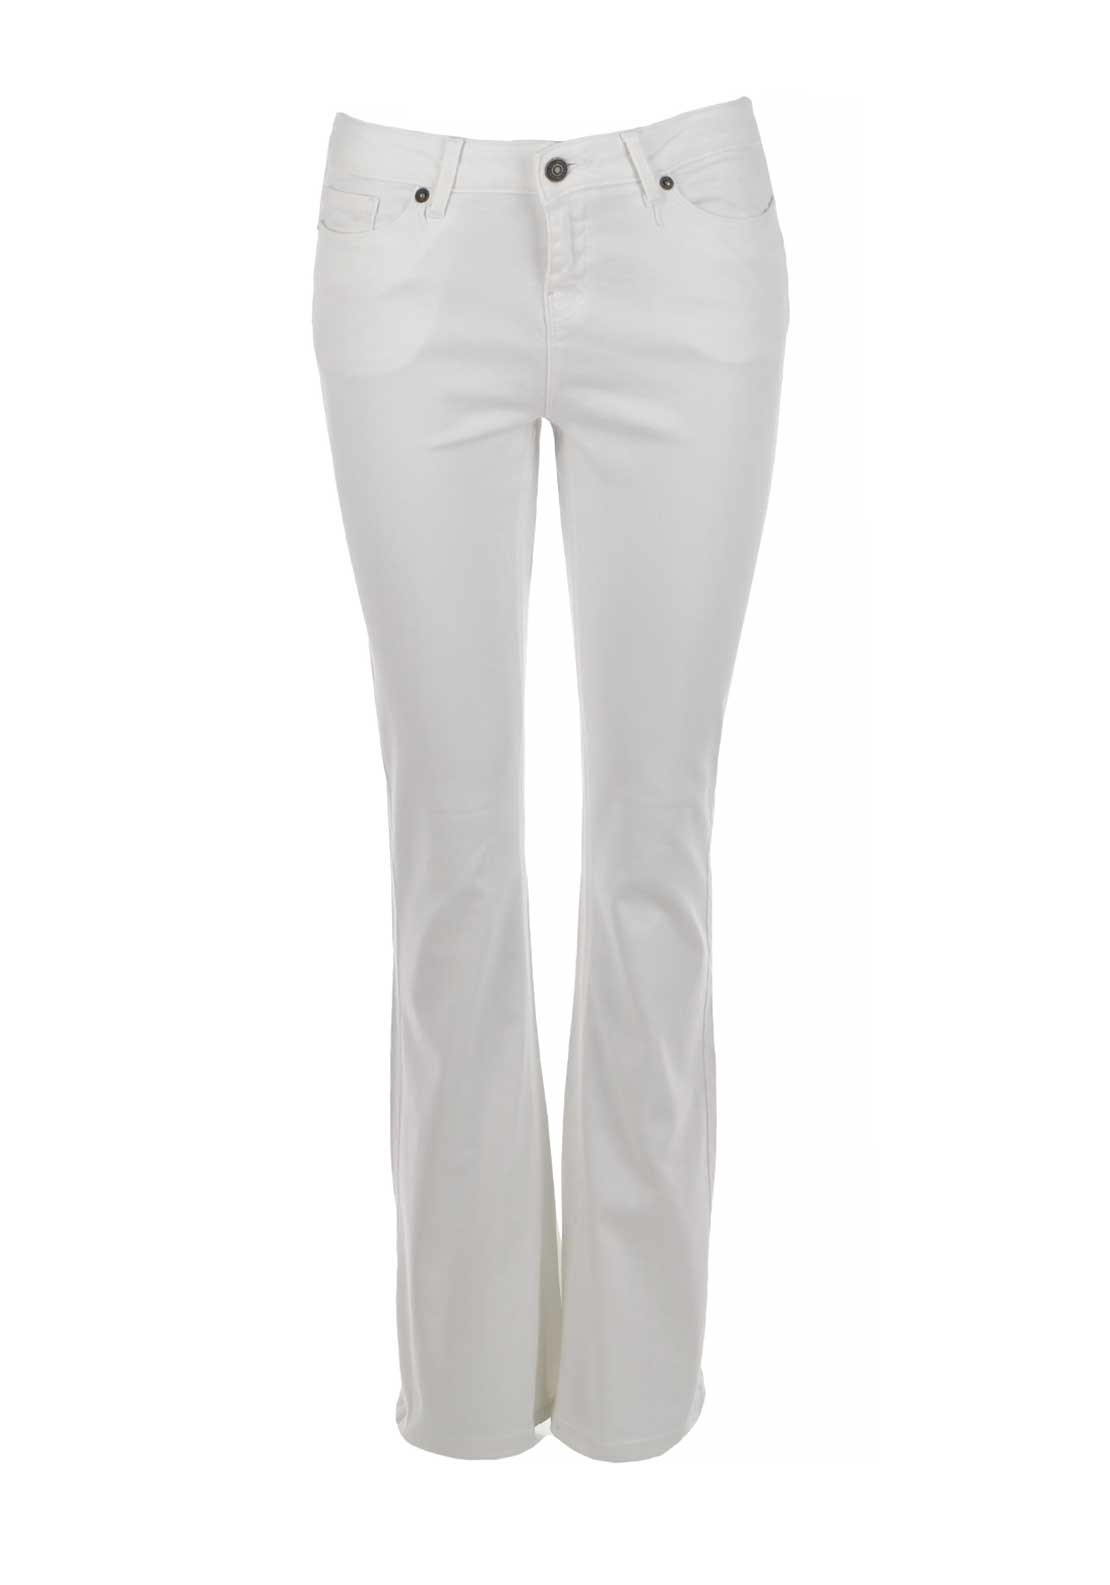 Vero Moda Sally Flare Jeans, Bright White